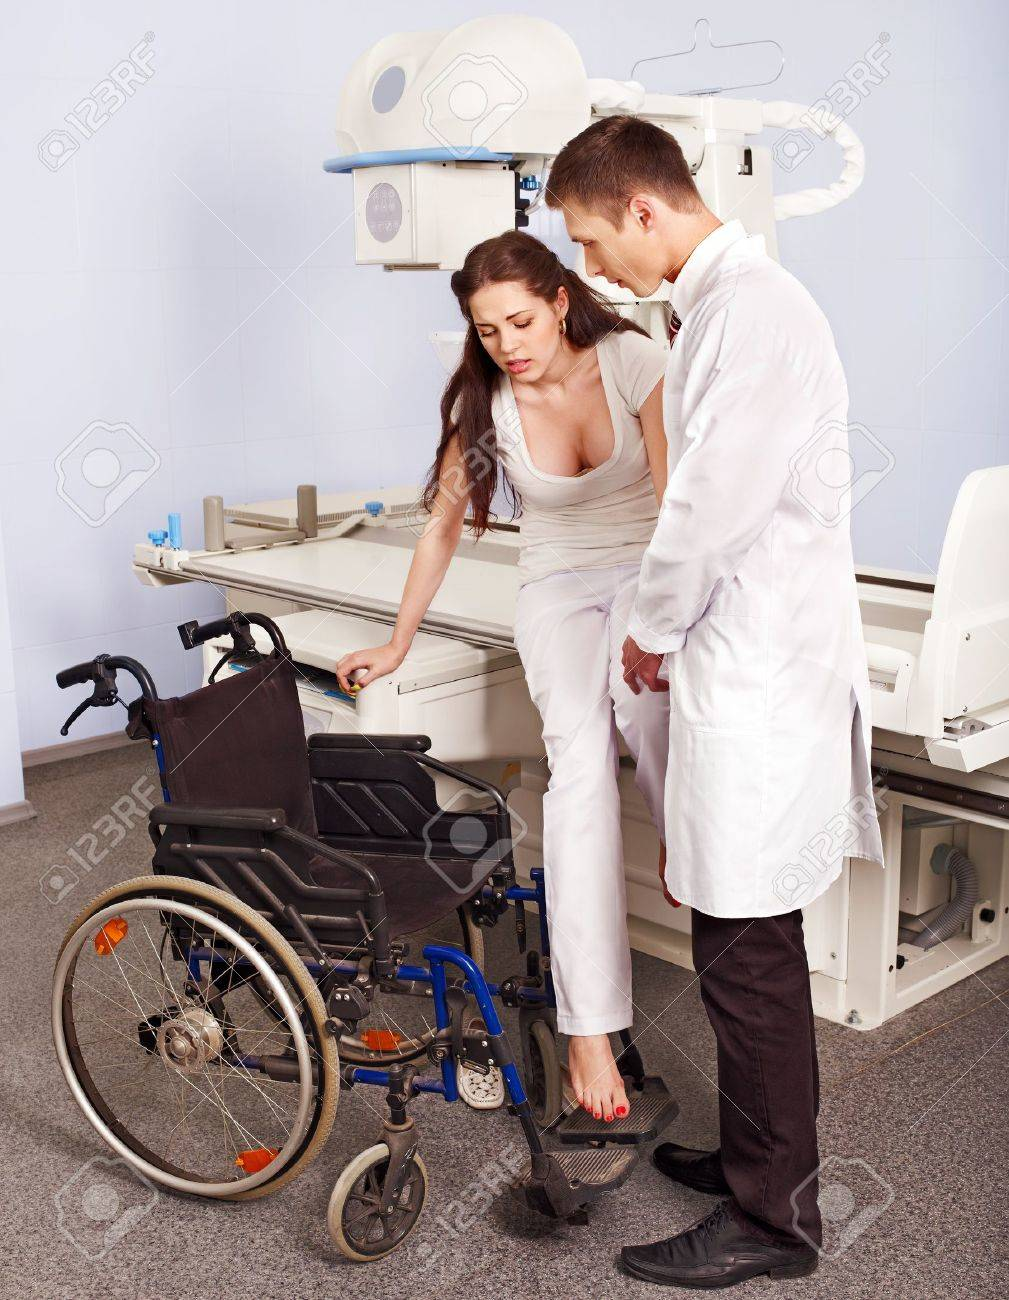 Doctor checking patient  in x-ray room. Stock Photo - 14531341